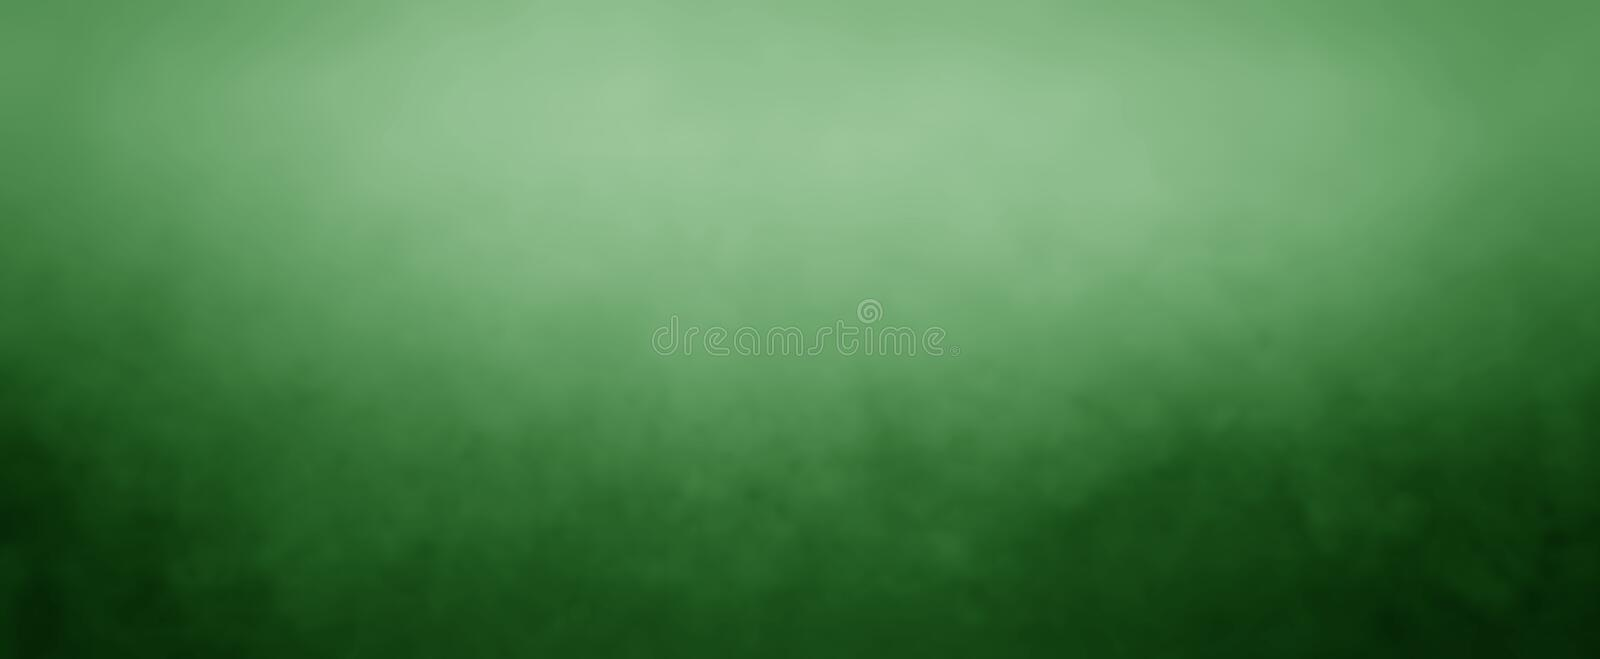 Christmas Green Color.Green Christmas Background Vintage Texture Stock Image